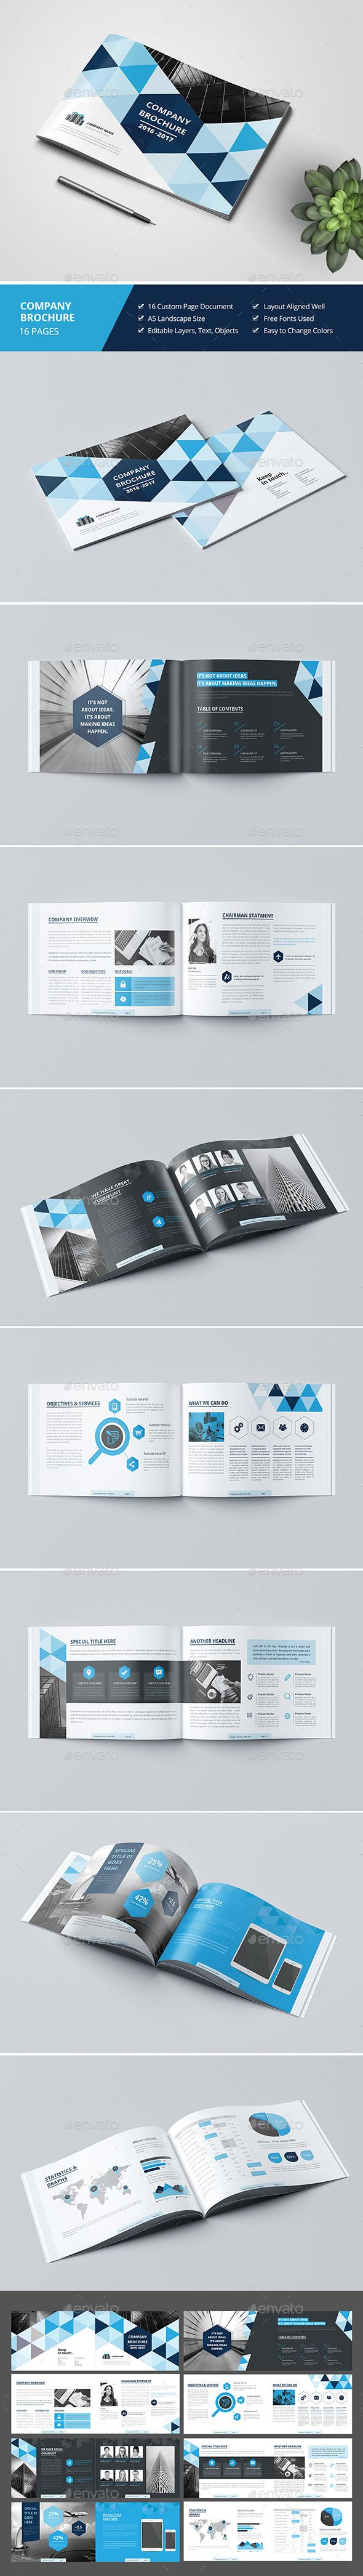 Haweya Landscape Brochure 16 Pages Template 	InDesign INDD. Download here: graph...